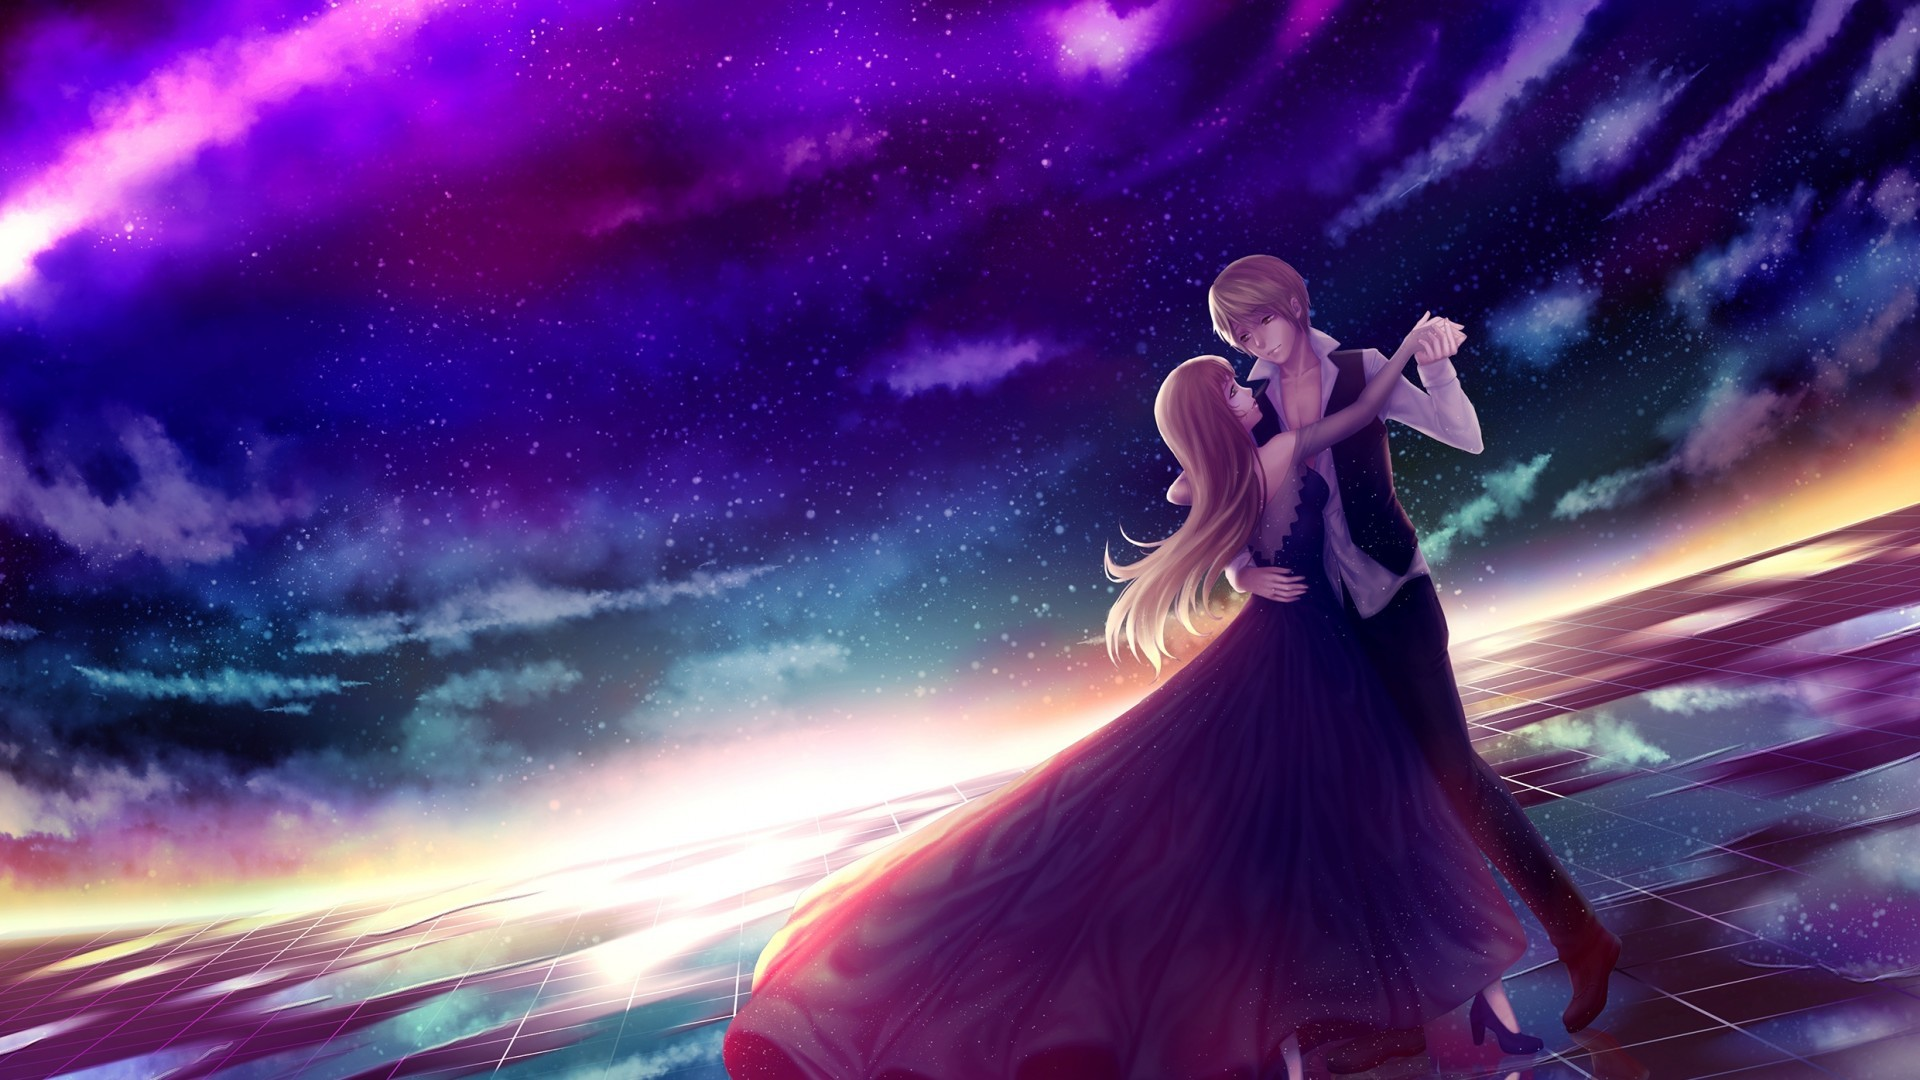 1920x1080 Anime Couple, Dancing, Stars, Sky, Romance, Dress